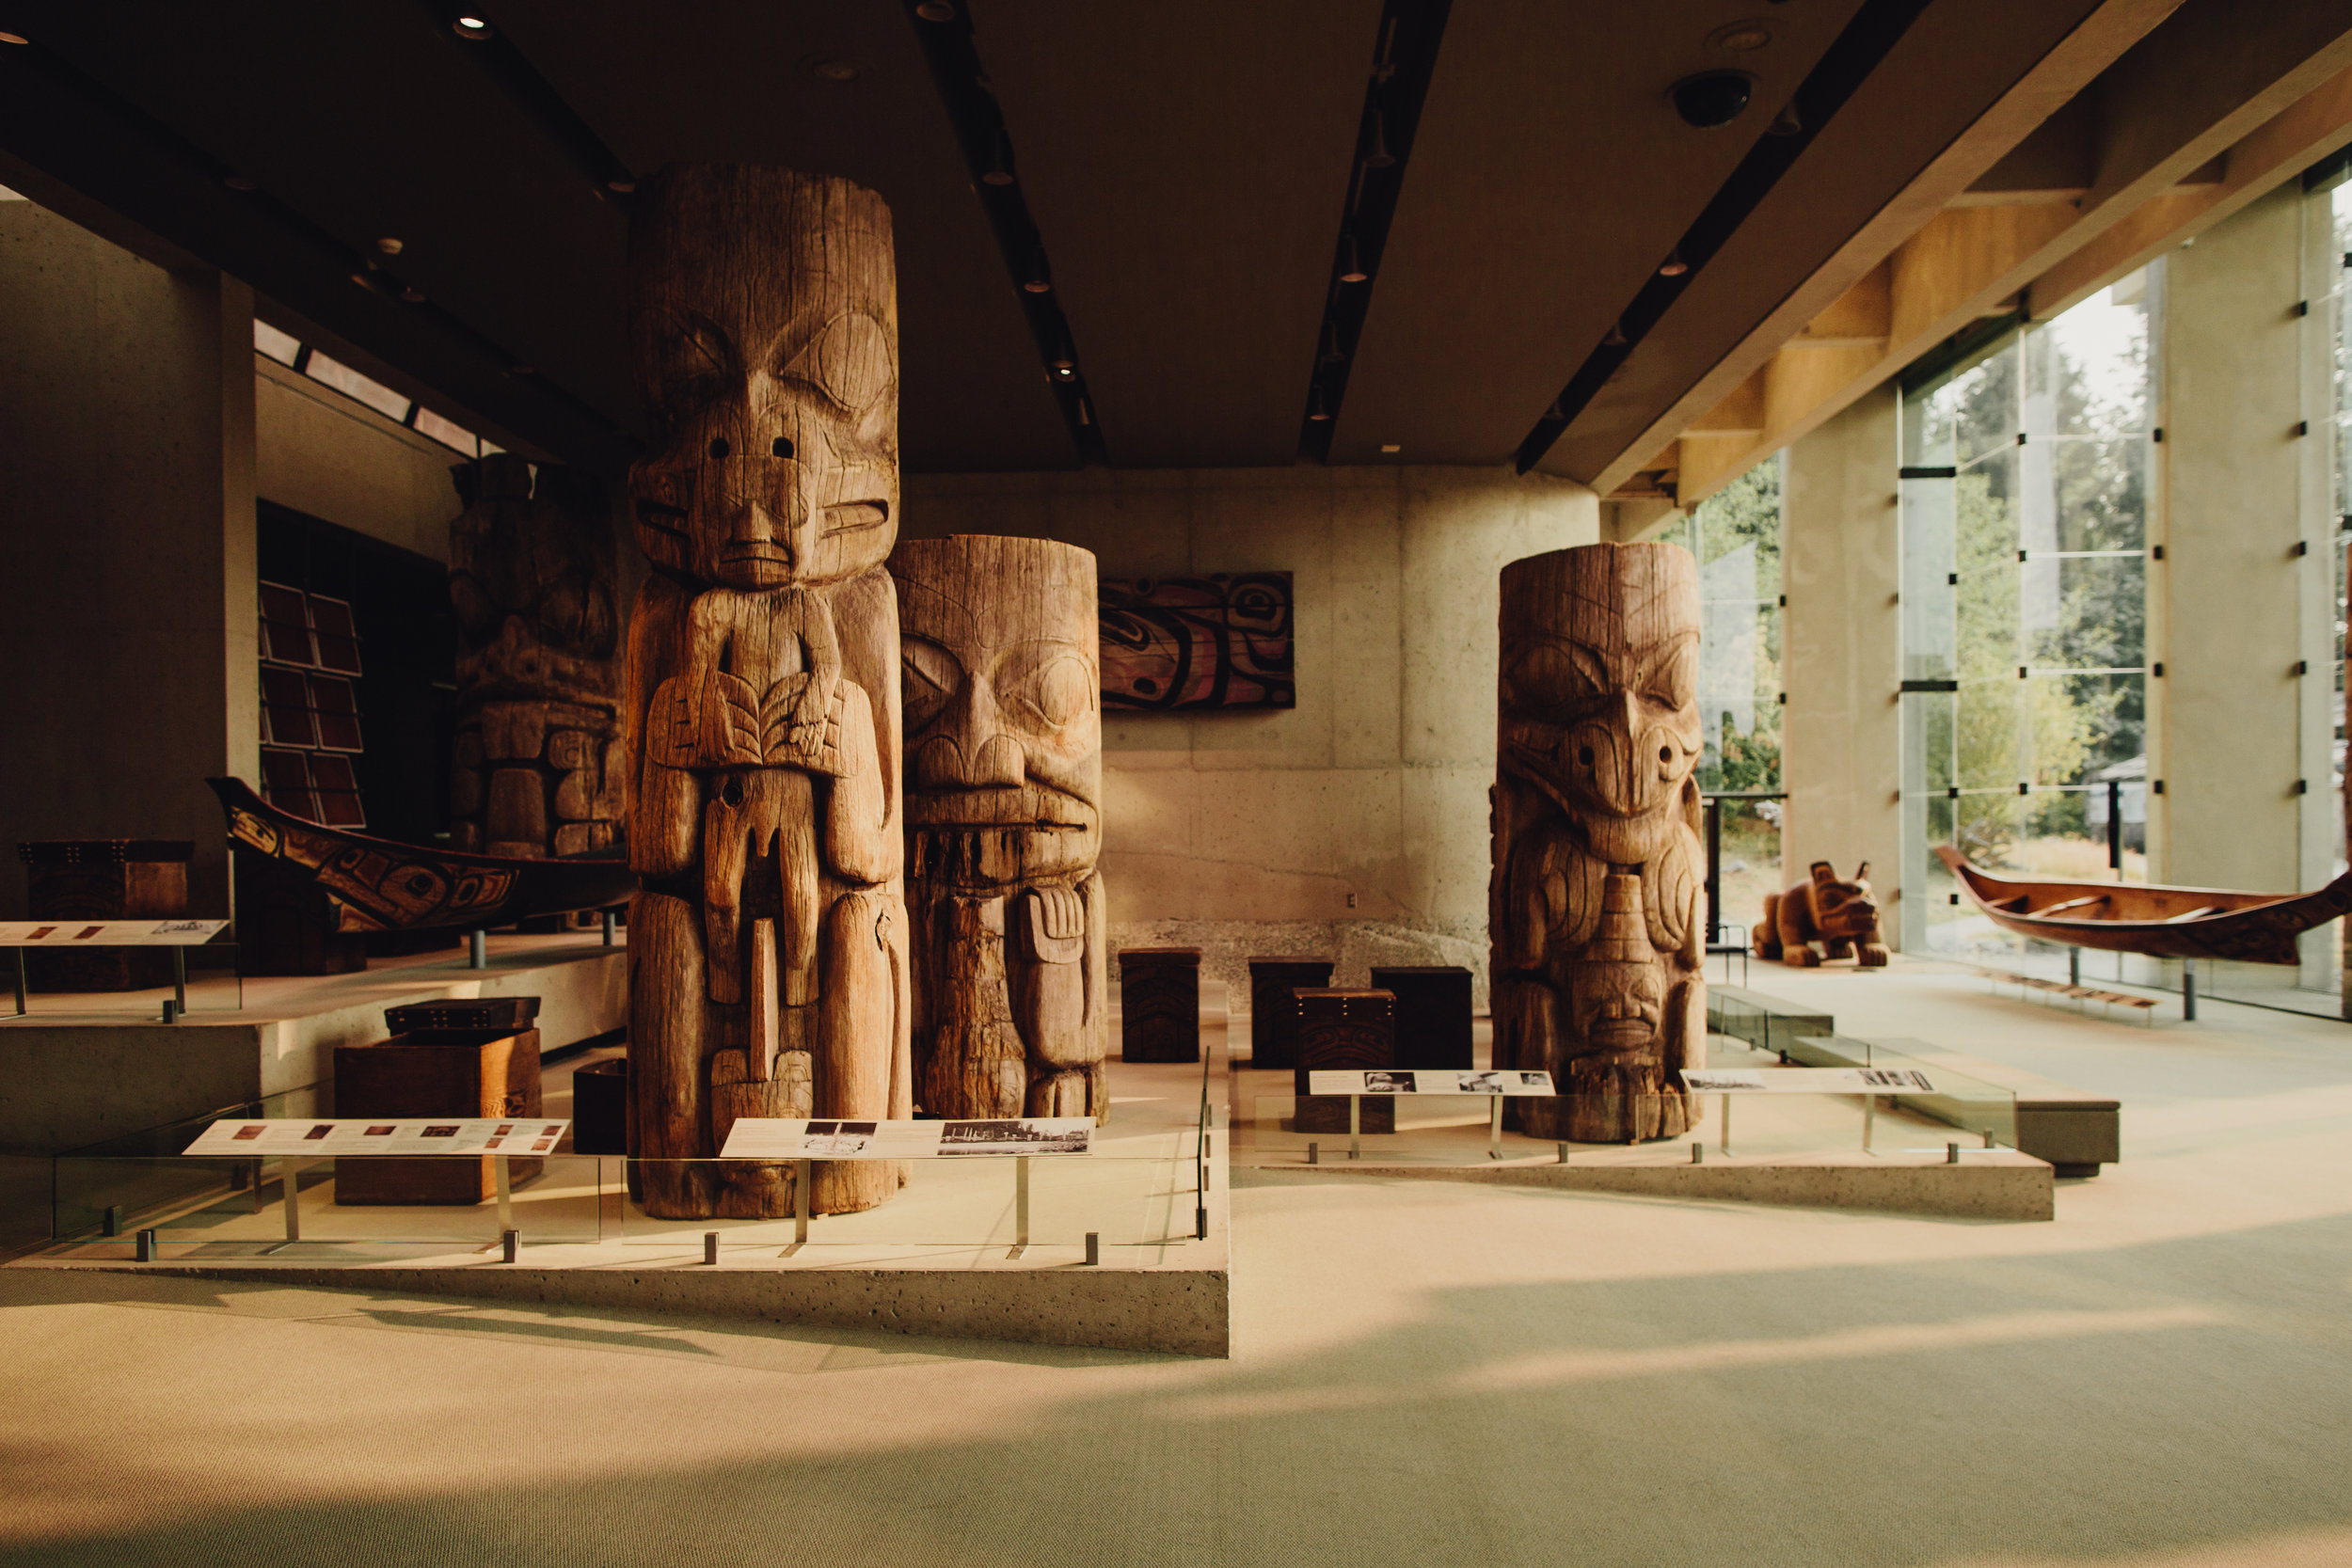 Haida Poles at the Museum of Anthropology in Vancouver BC